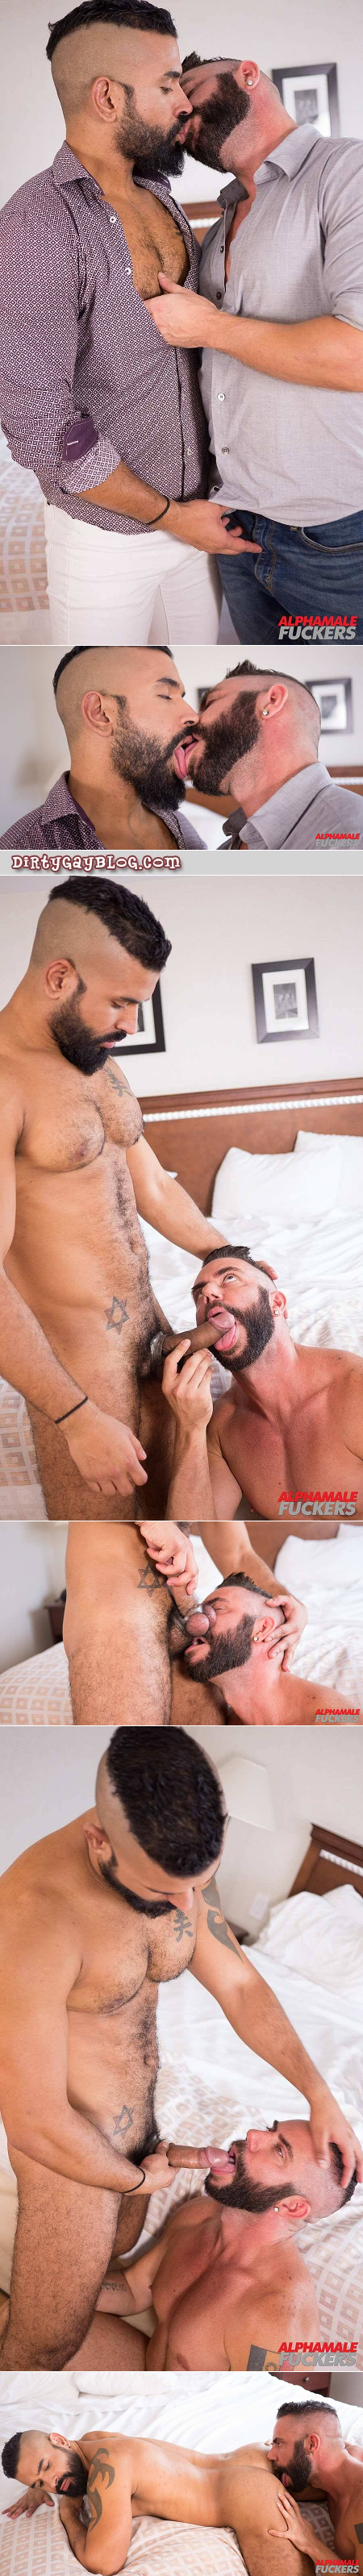 Muscular gay couple sucking cock and eating ass.